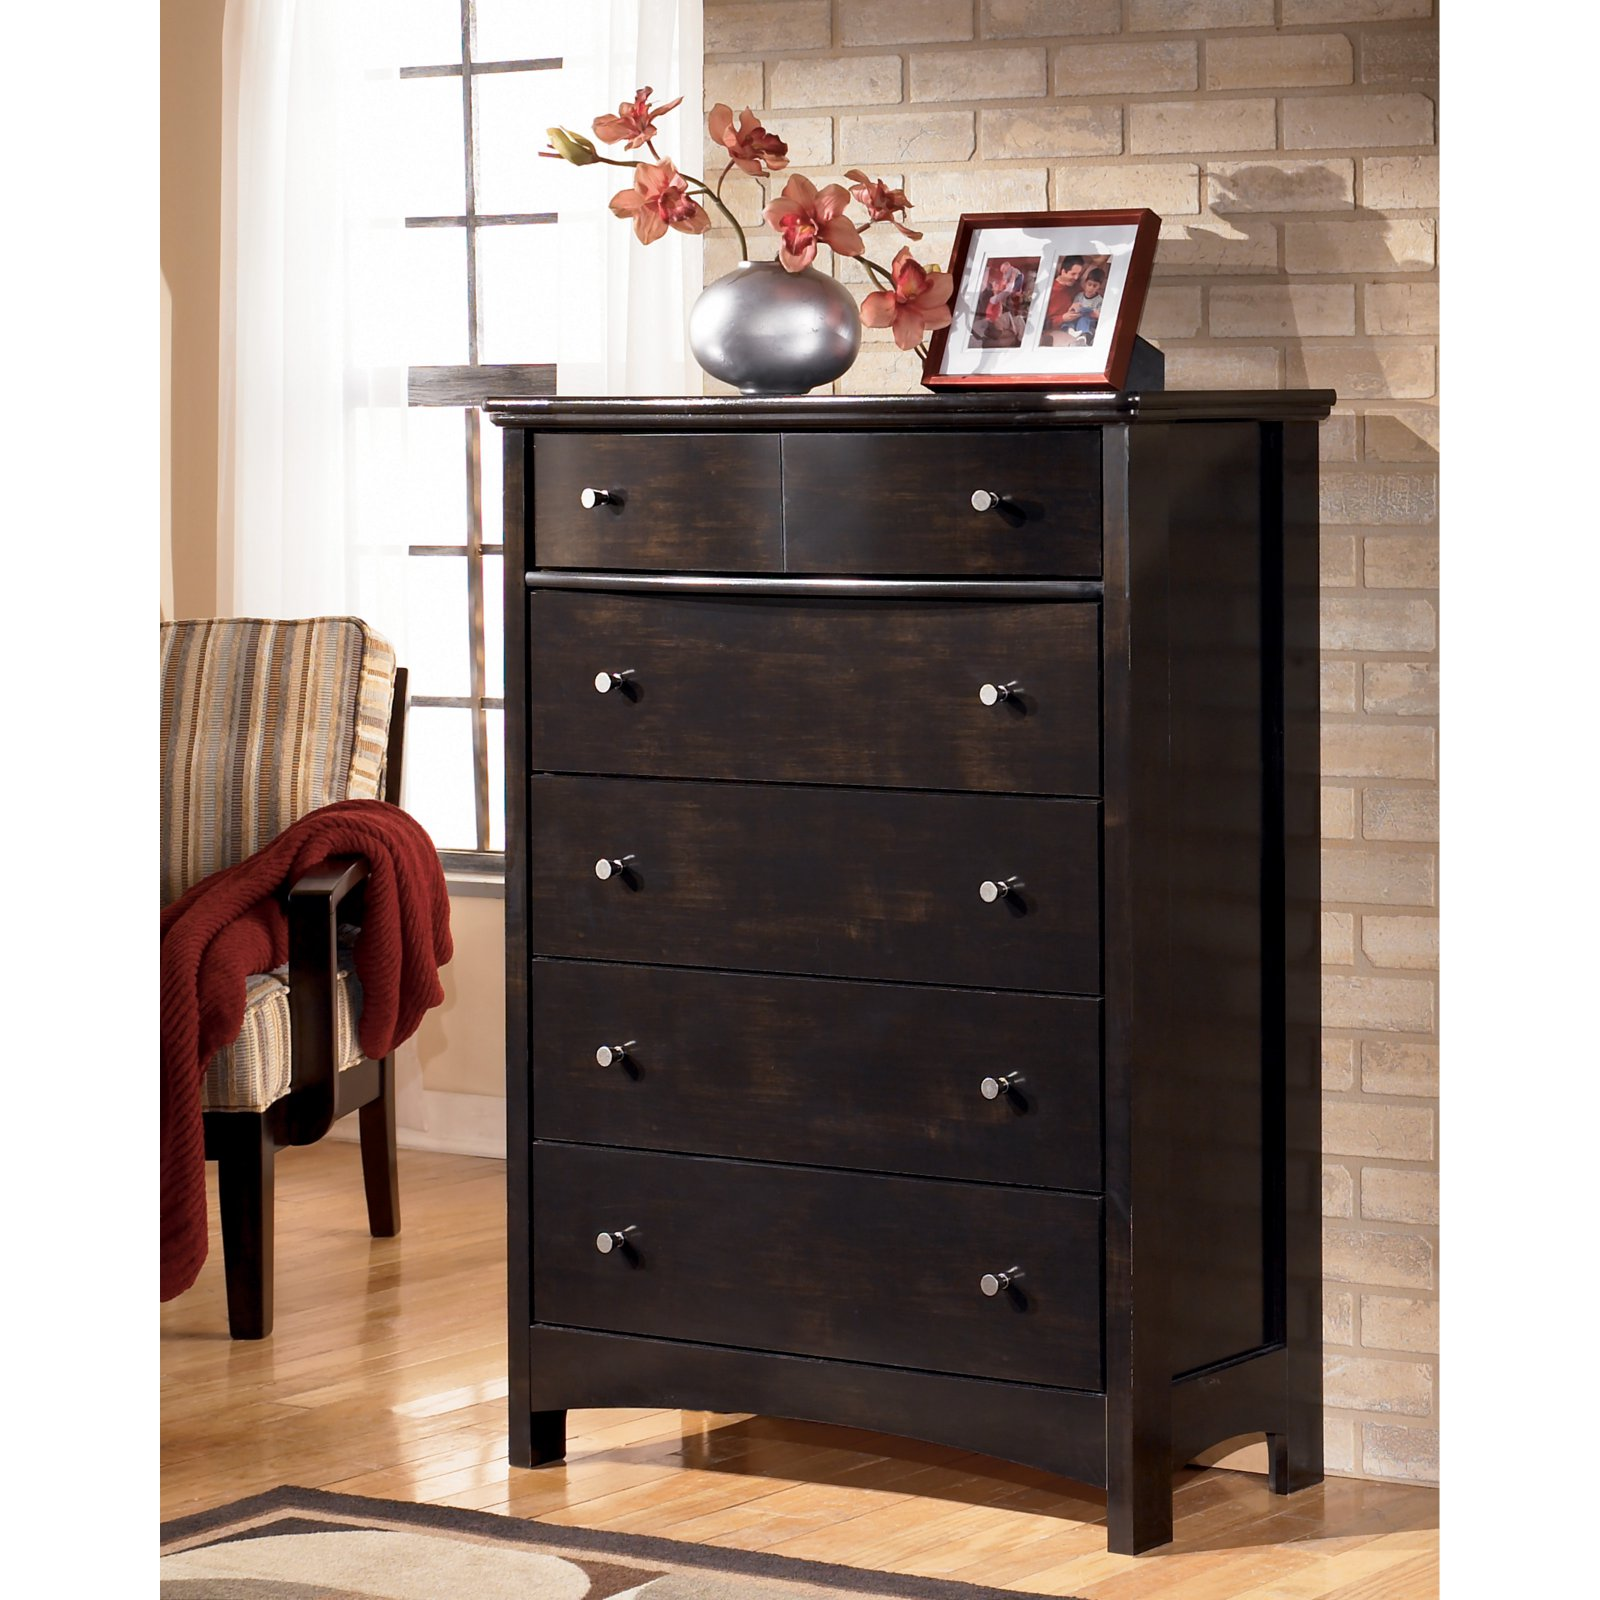 Signature Design by Ashley Harmony 5 Drawer Chest